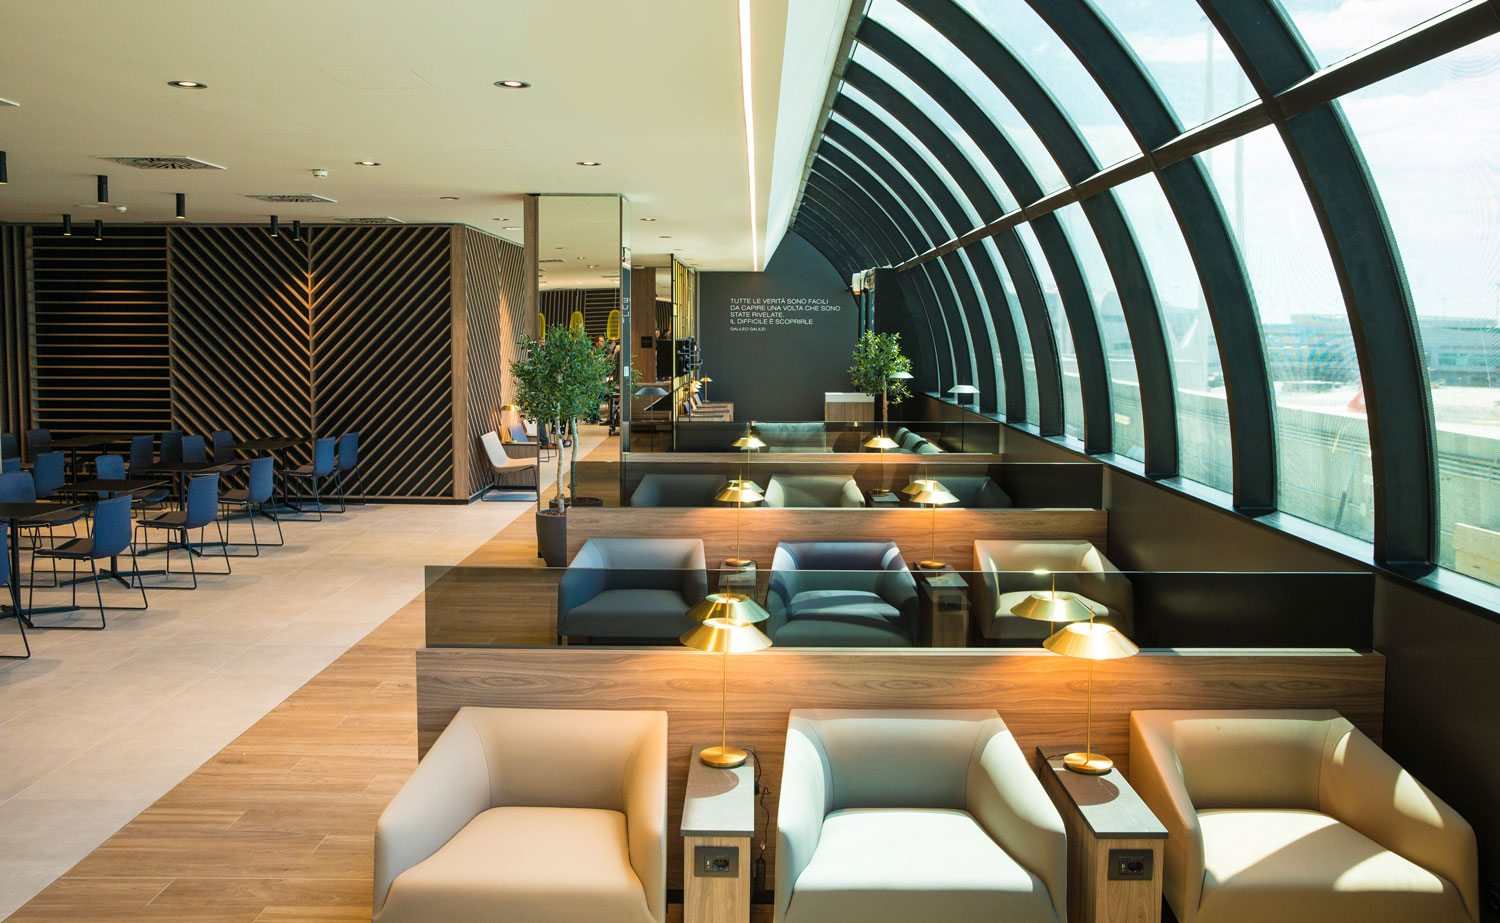 VIP LOUNGE STAR ALLIANCE LOUNG FIUMICINO ROME UP TO YOU STUDIO AIRPORT GLOBAL CONCEPT DESIGN INTERIOR DESIGN BRAND IDENTITY